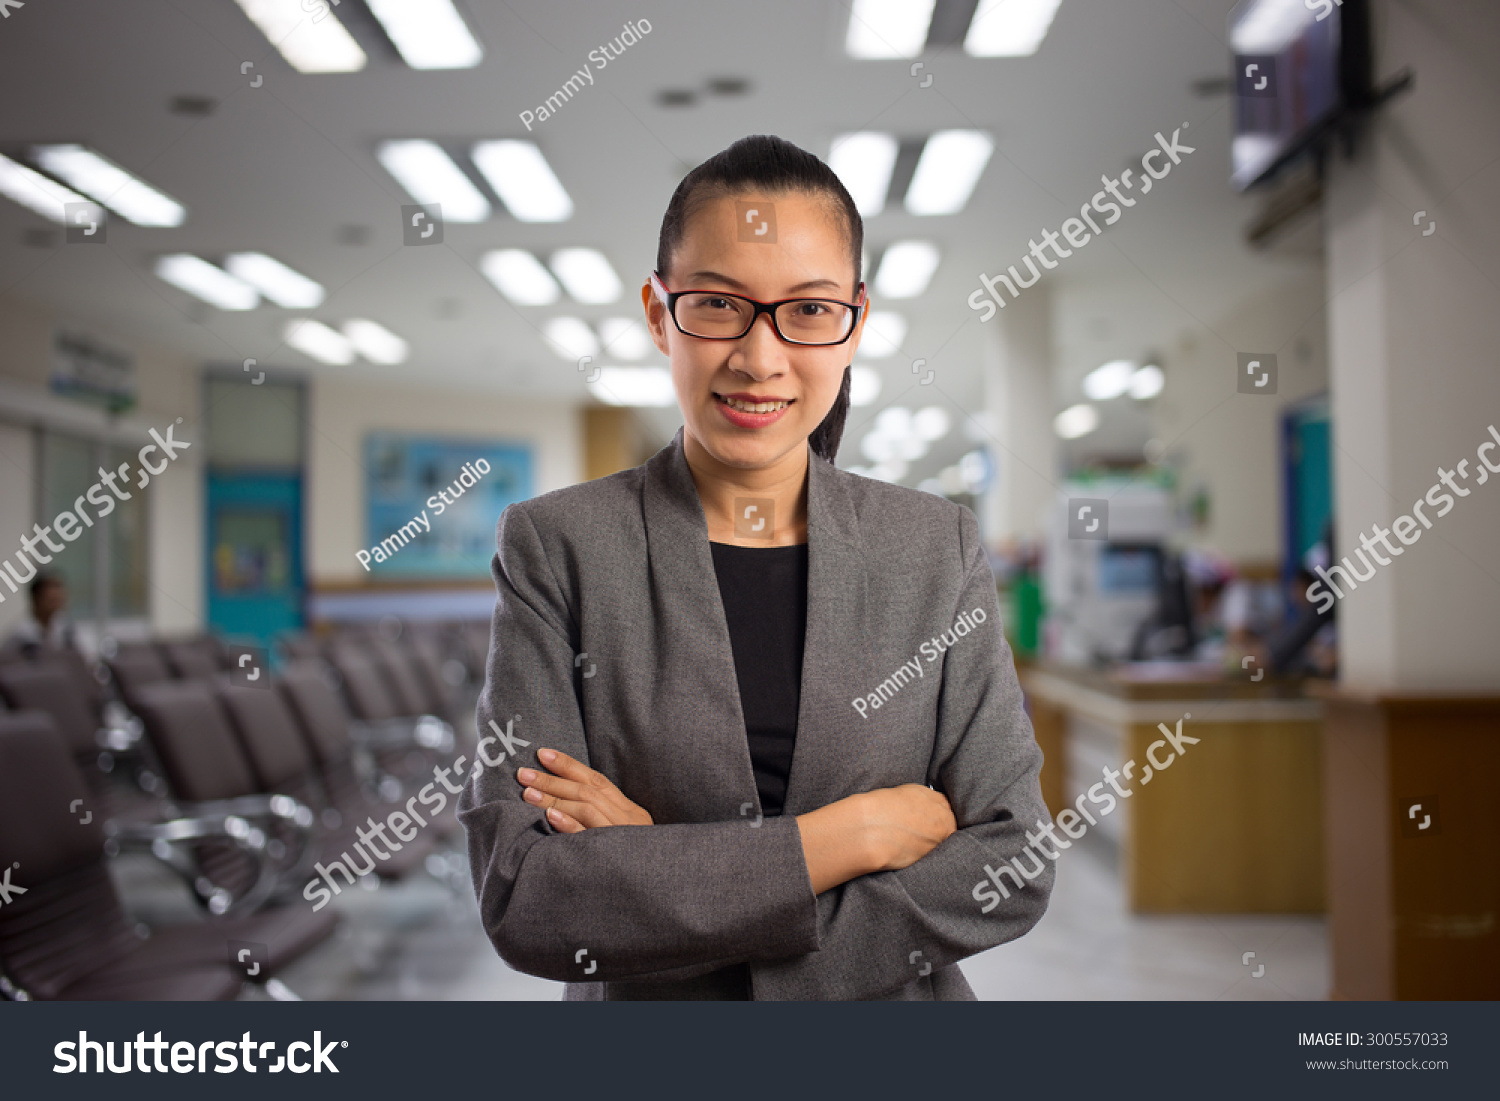 Woman hospital waiting room stockfoto 300557033 shutterstock - Voorbeeld volwassene kamer ...